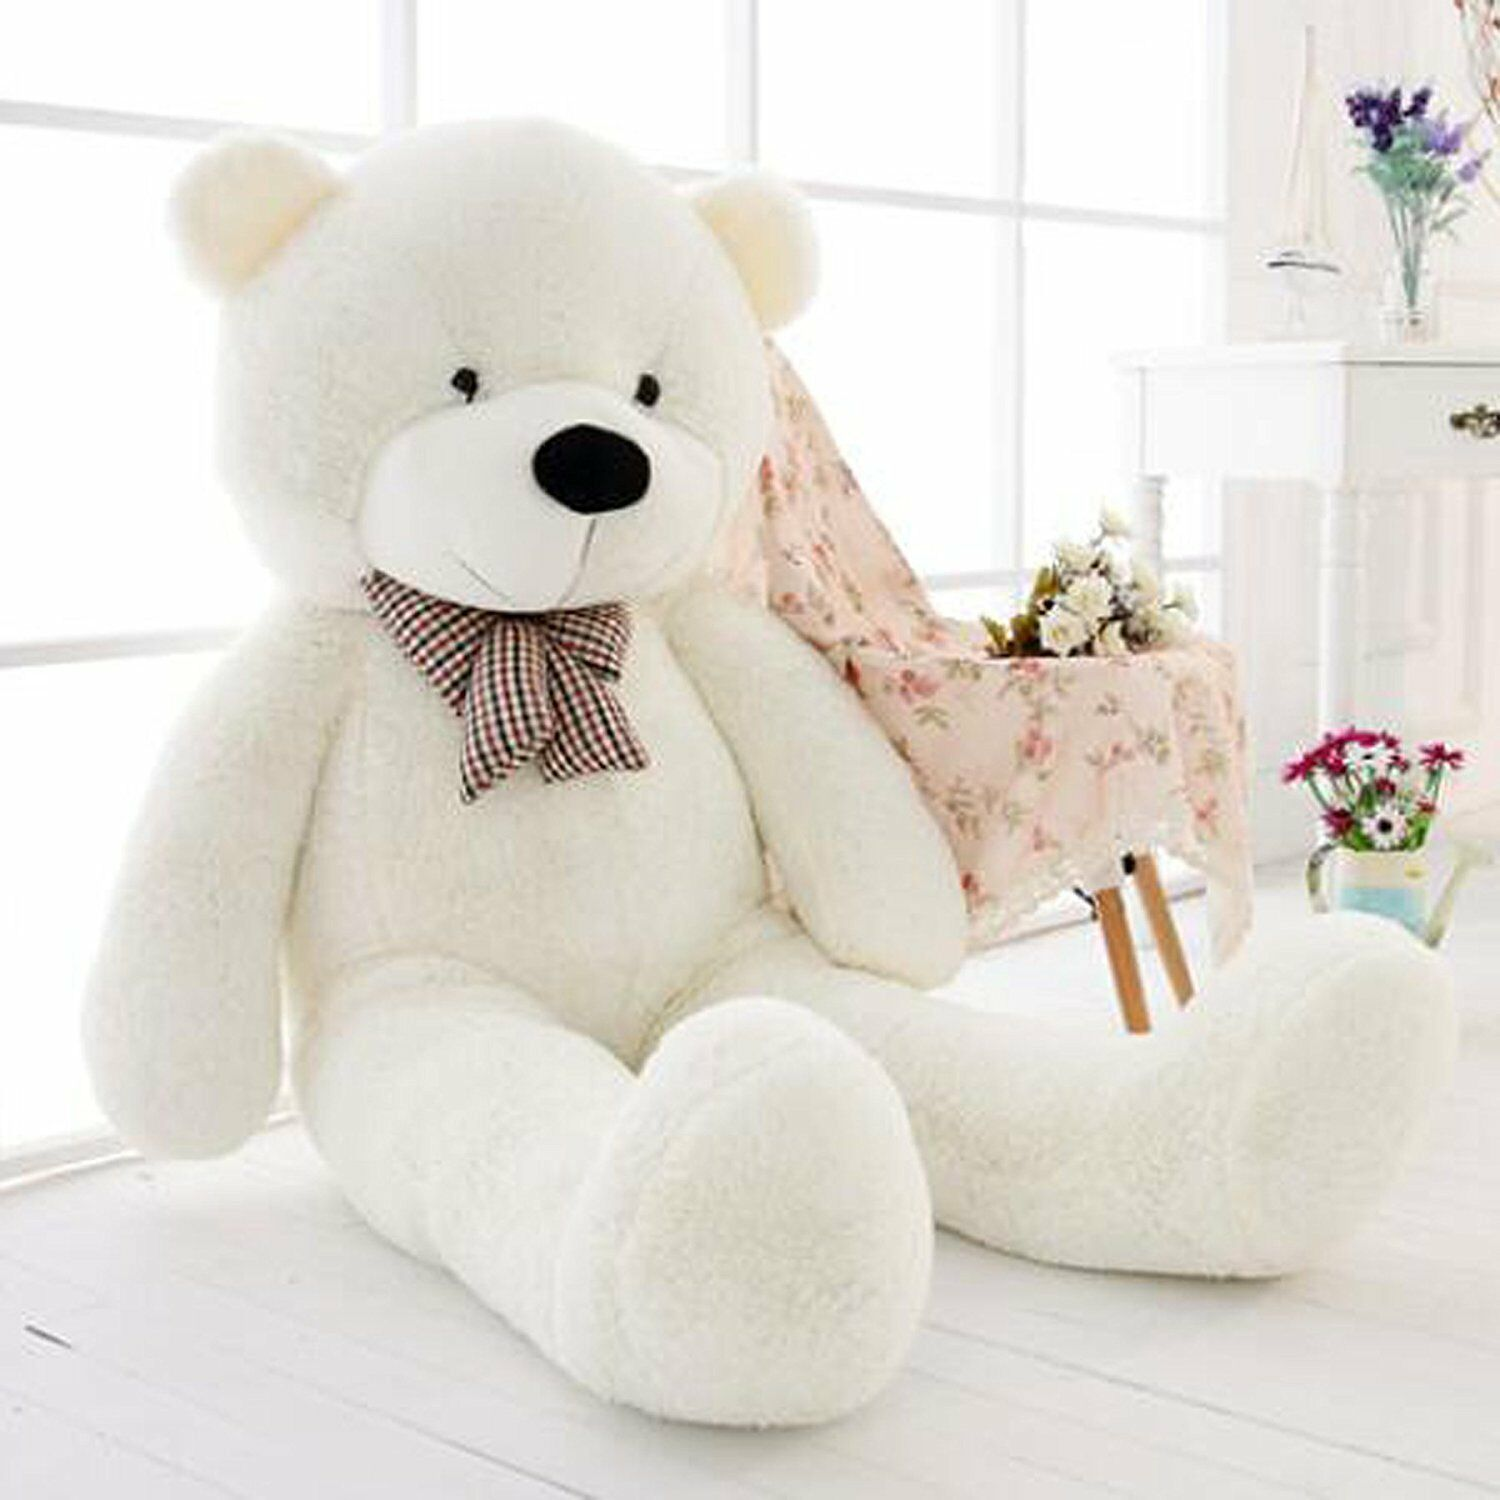 bca721ef7b6 Details about 55'' Giant big Teddy Bear CASE UNFILLED NO PP COTTON Huge  Stuffed Toys doll gift